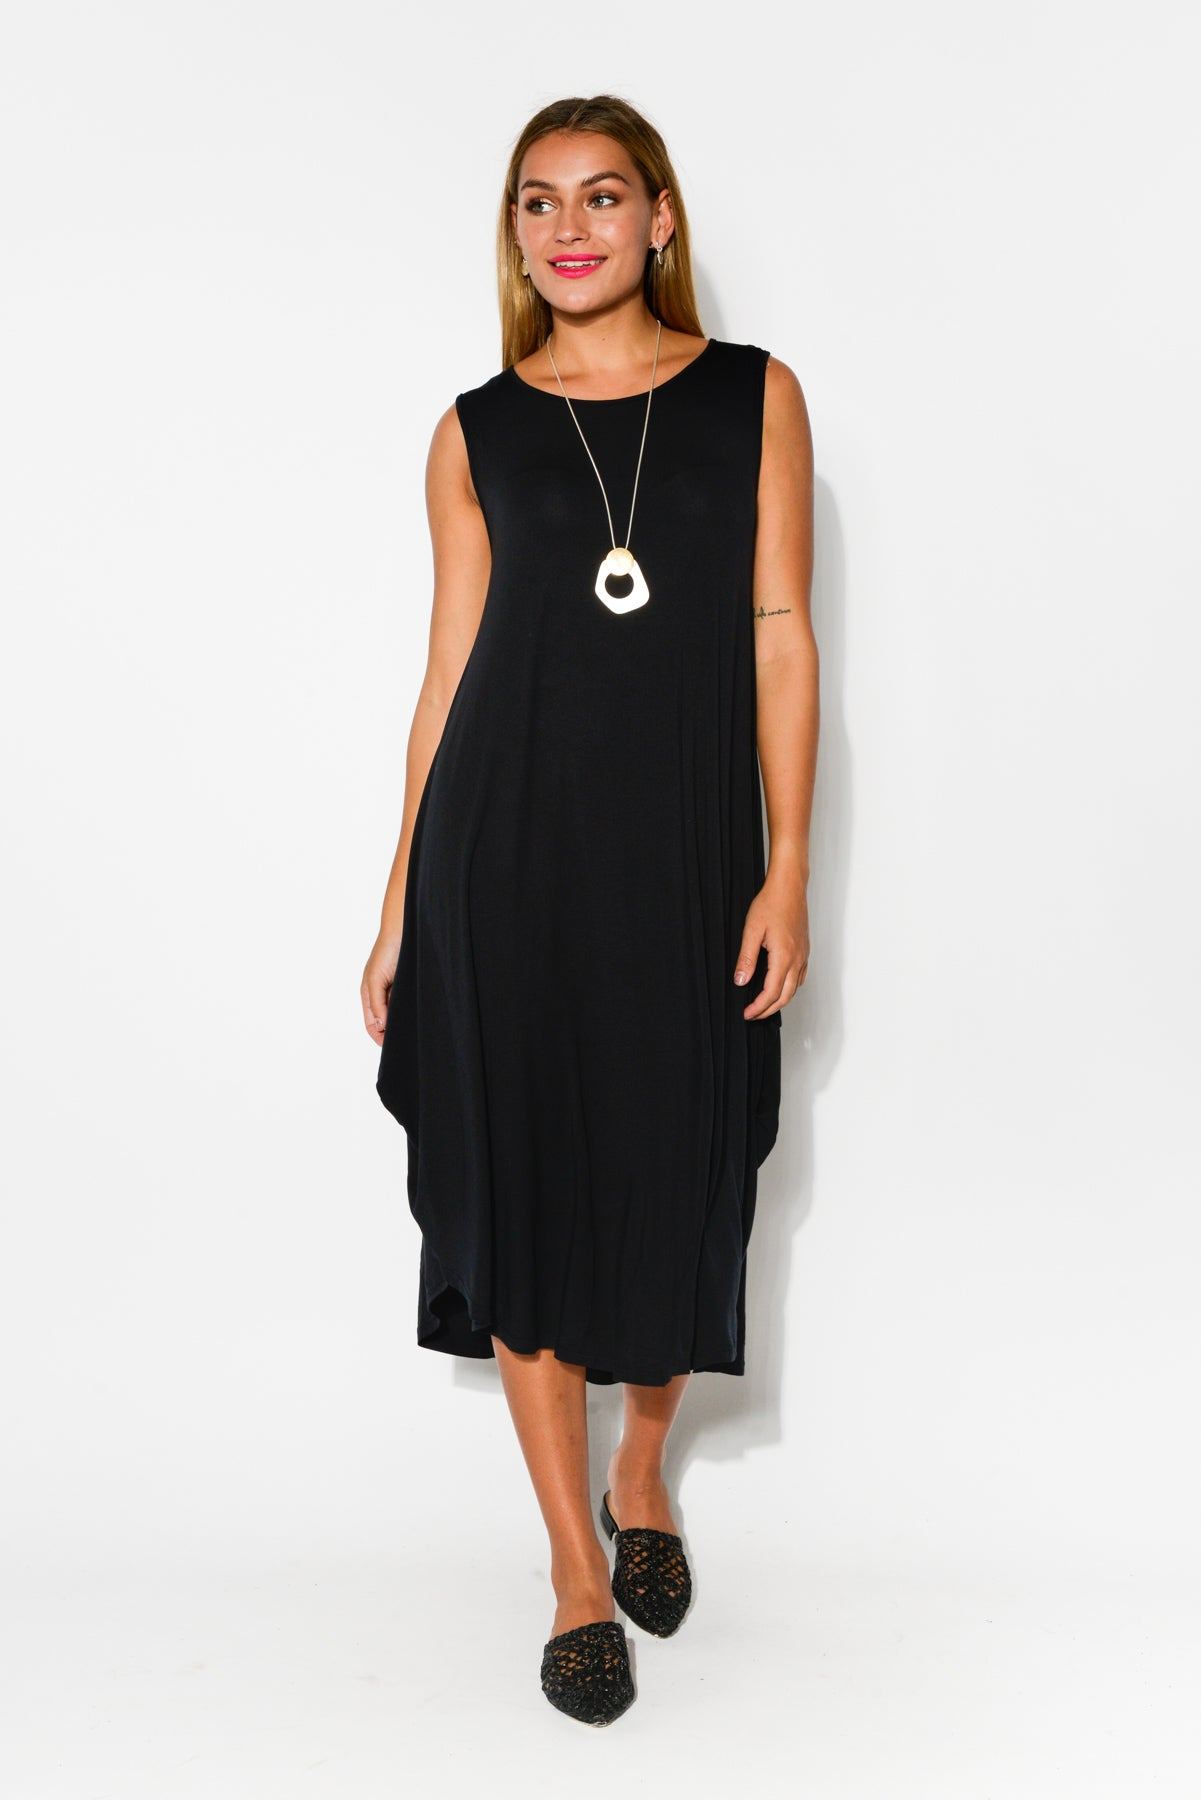 Black Modal Sleeveless Tri Drape Dress - Blue Bungalow